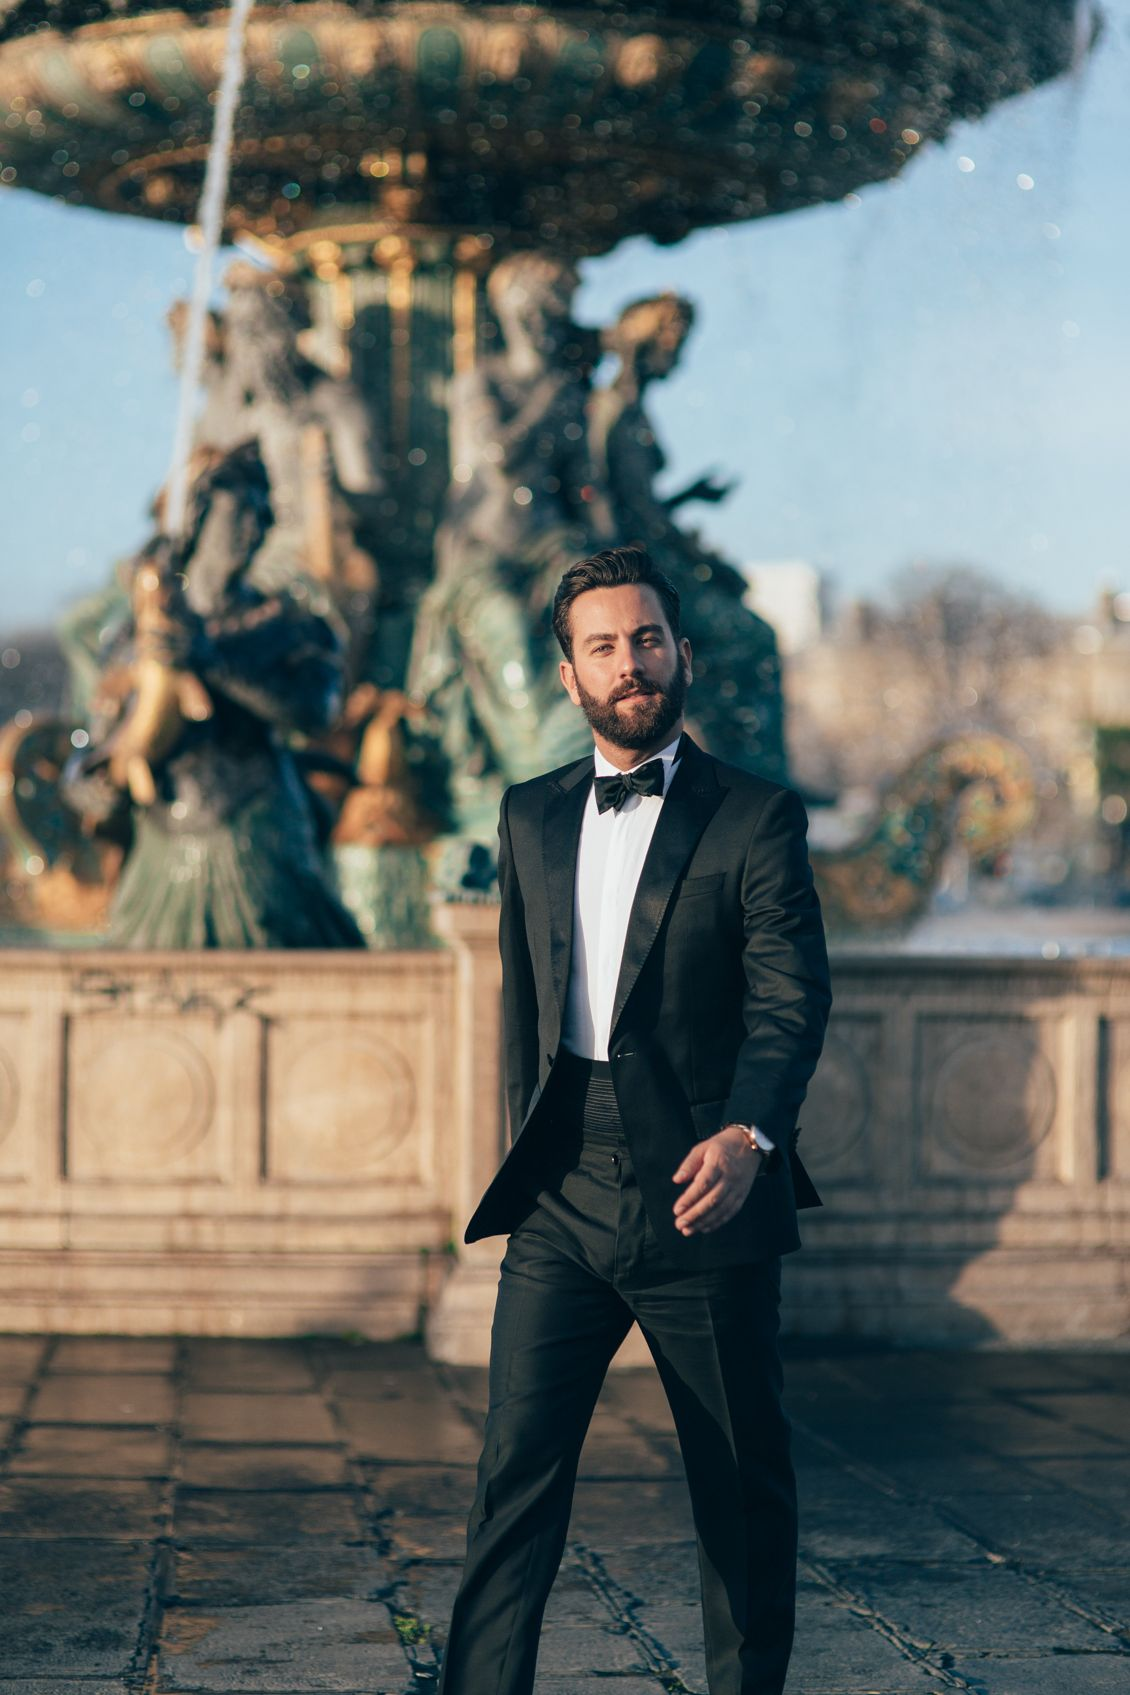 Man of Today | Gents fashion, Formal attire for men, Mens clothing styles